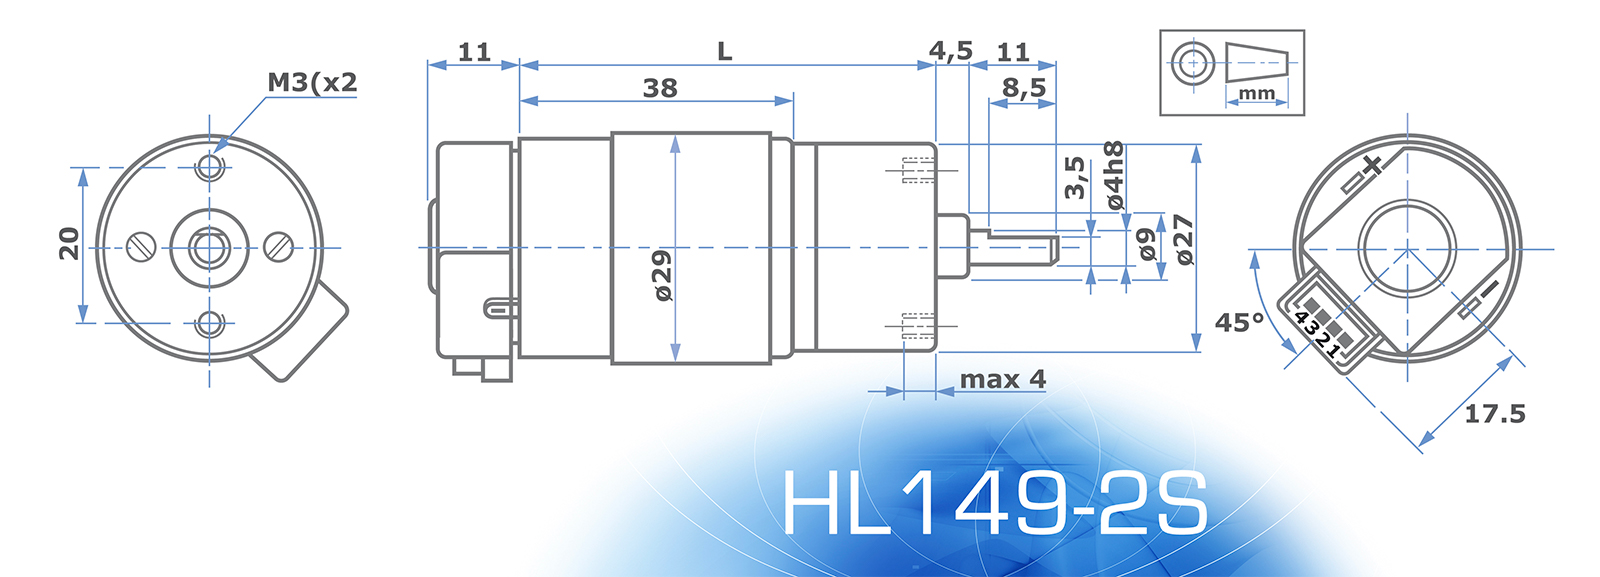 HL149 - Technical Drawing - Encoder